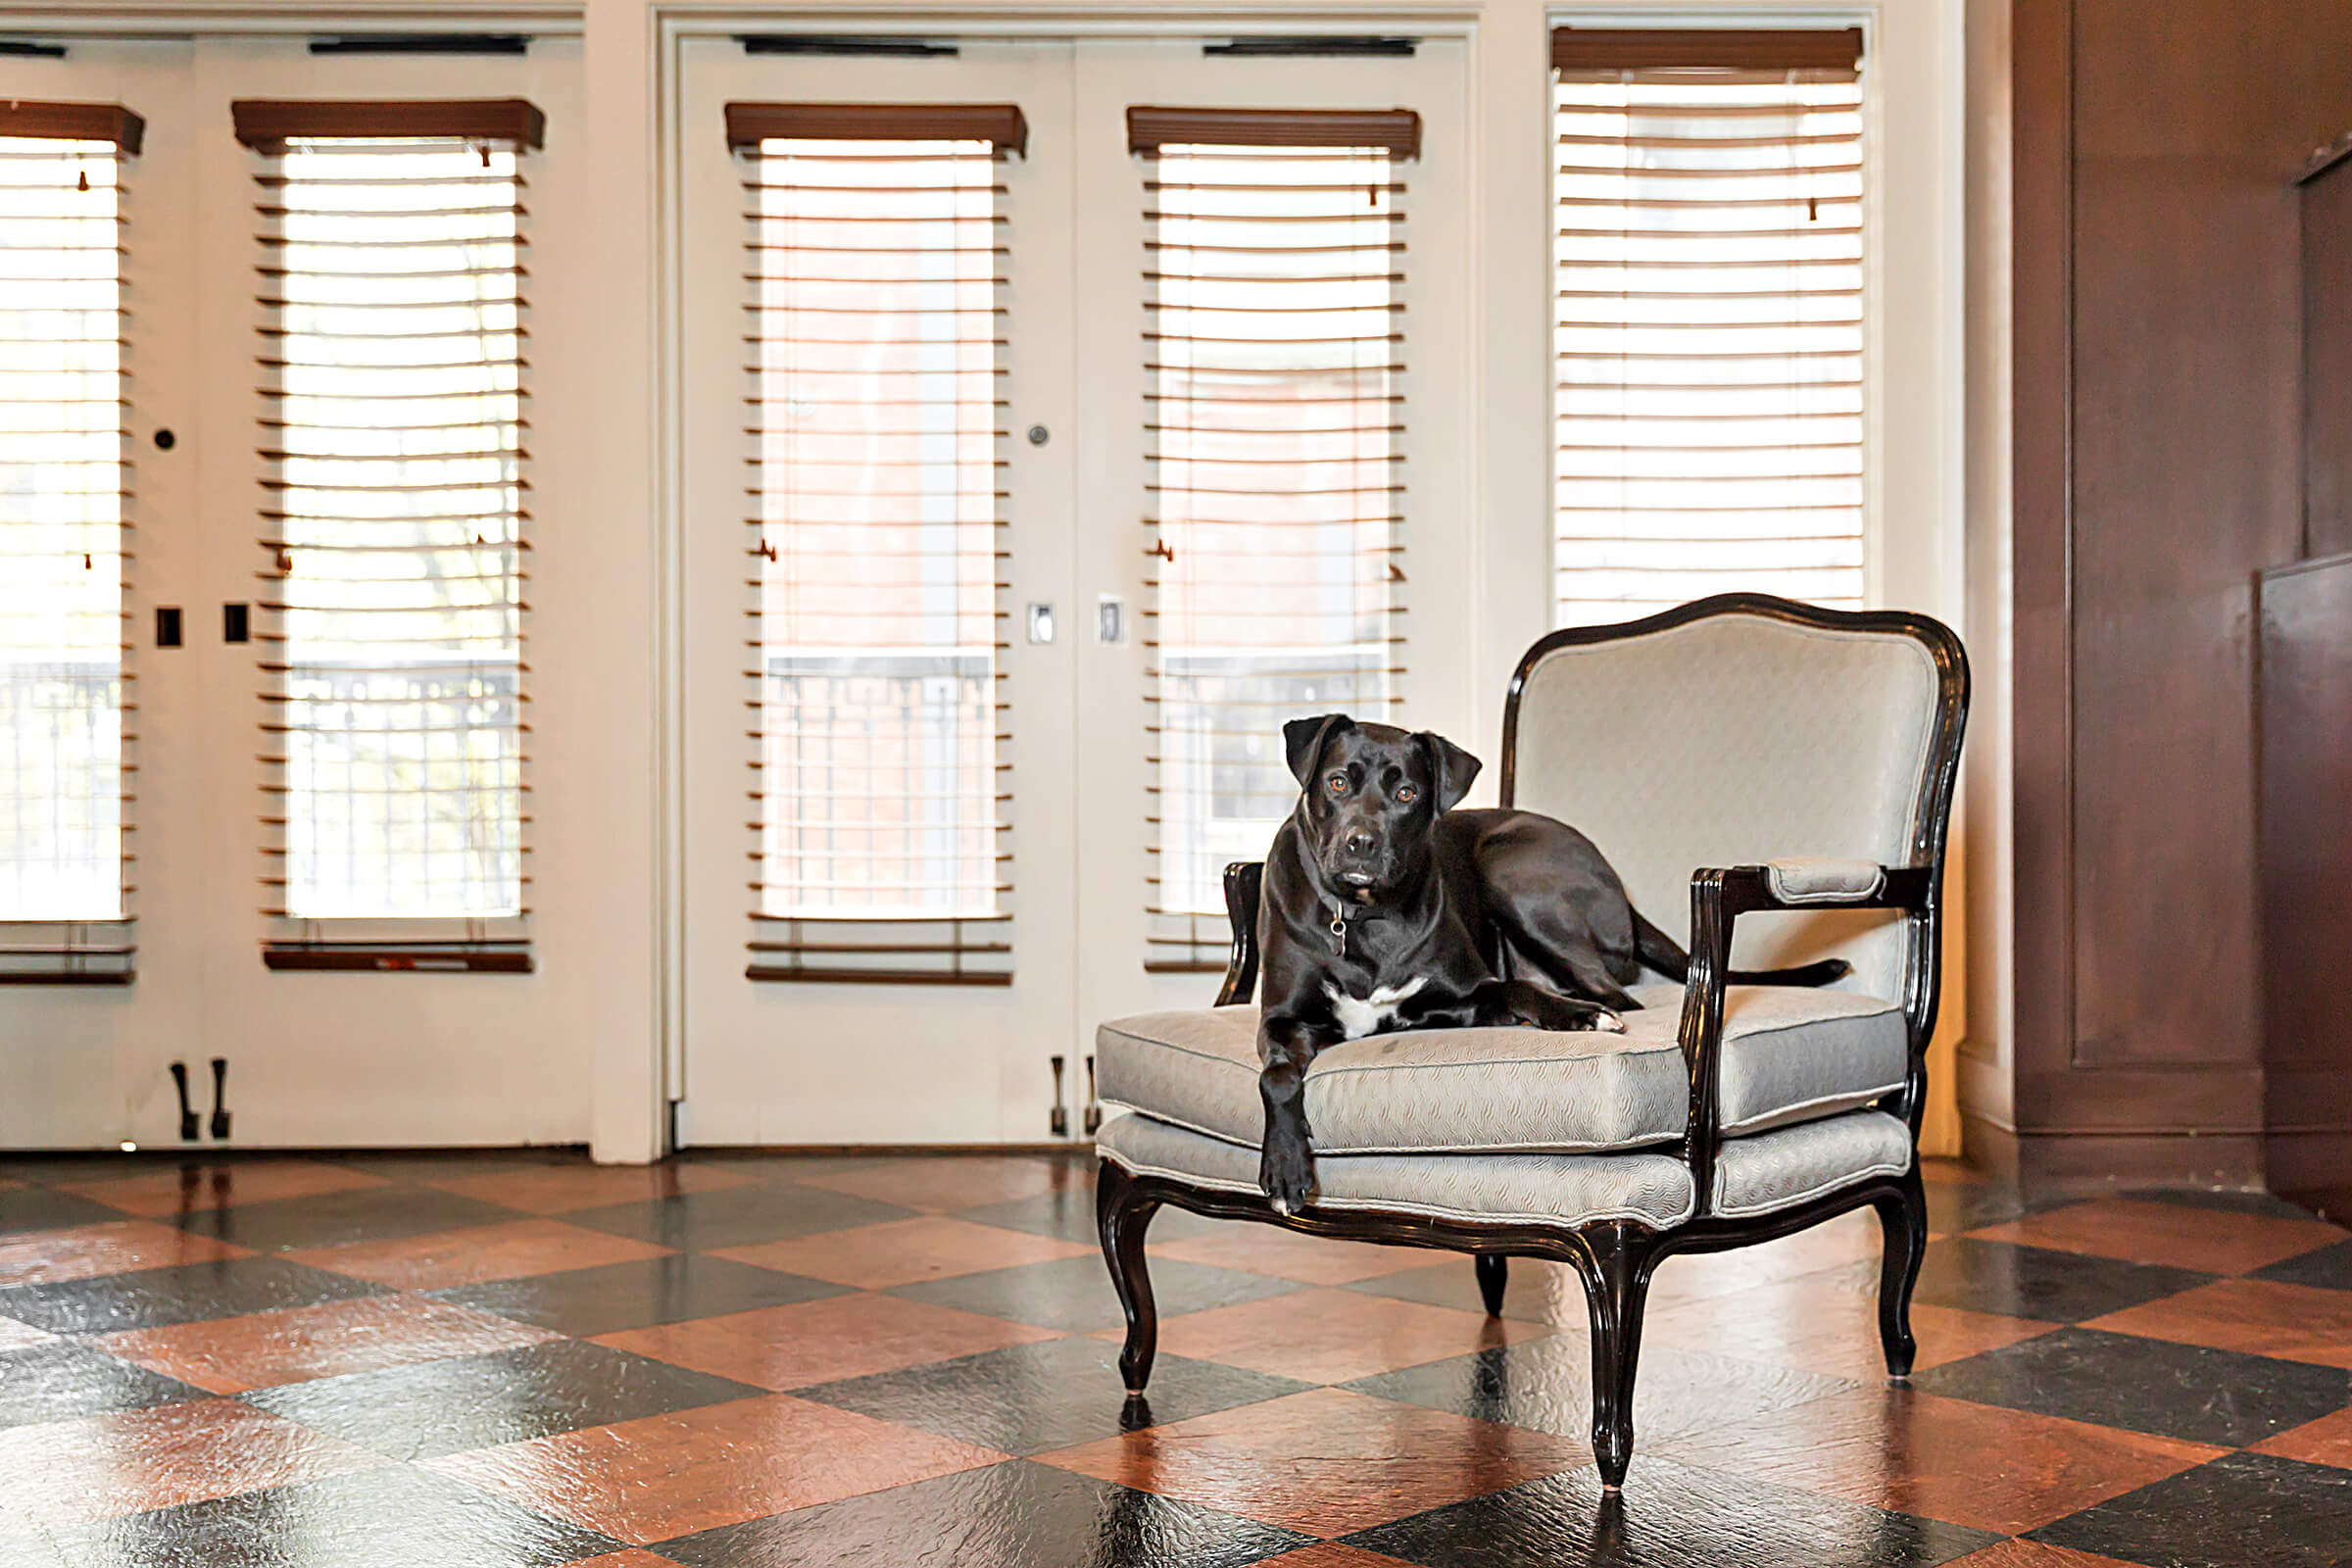 black lab on chair in hotel photography